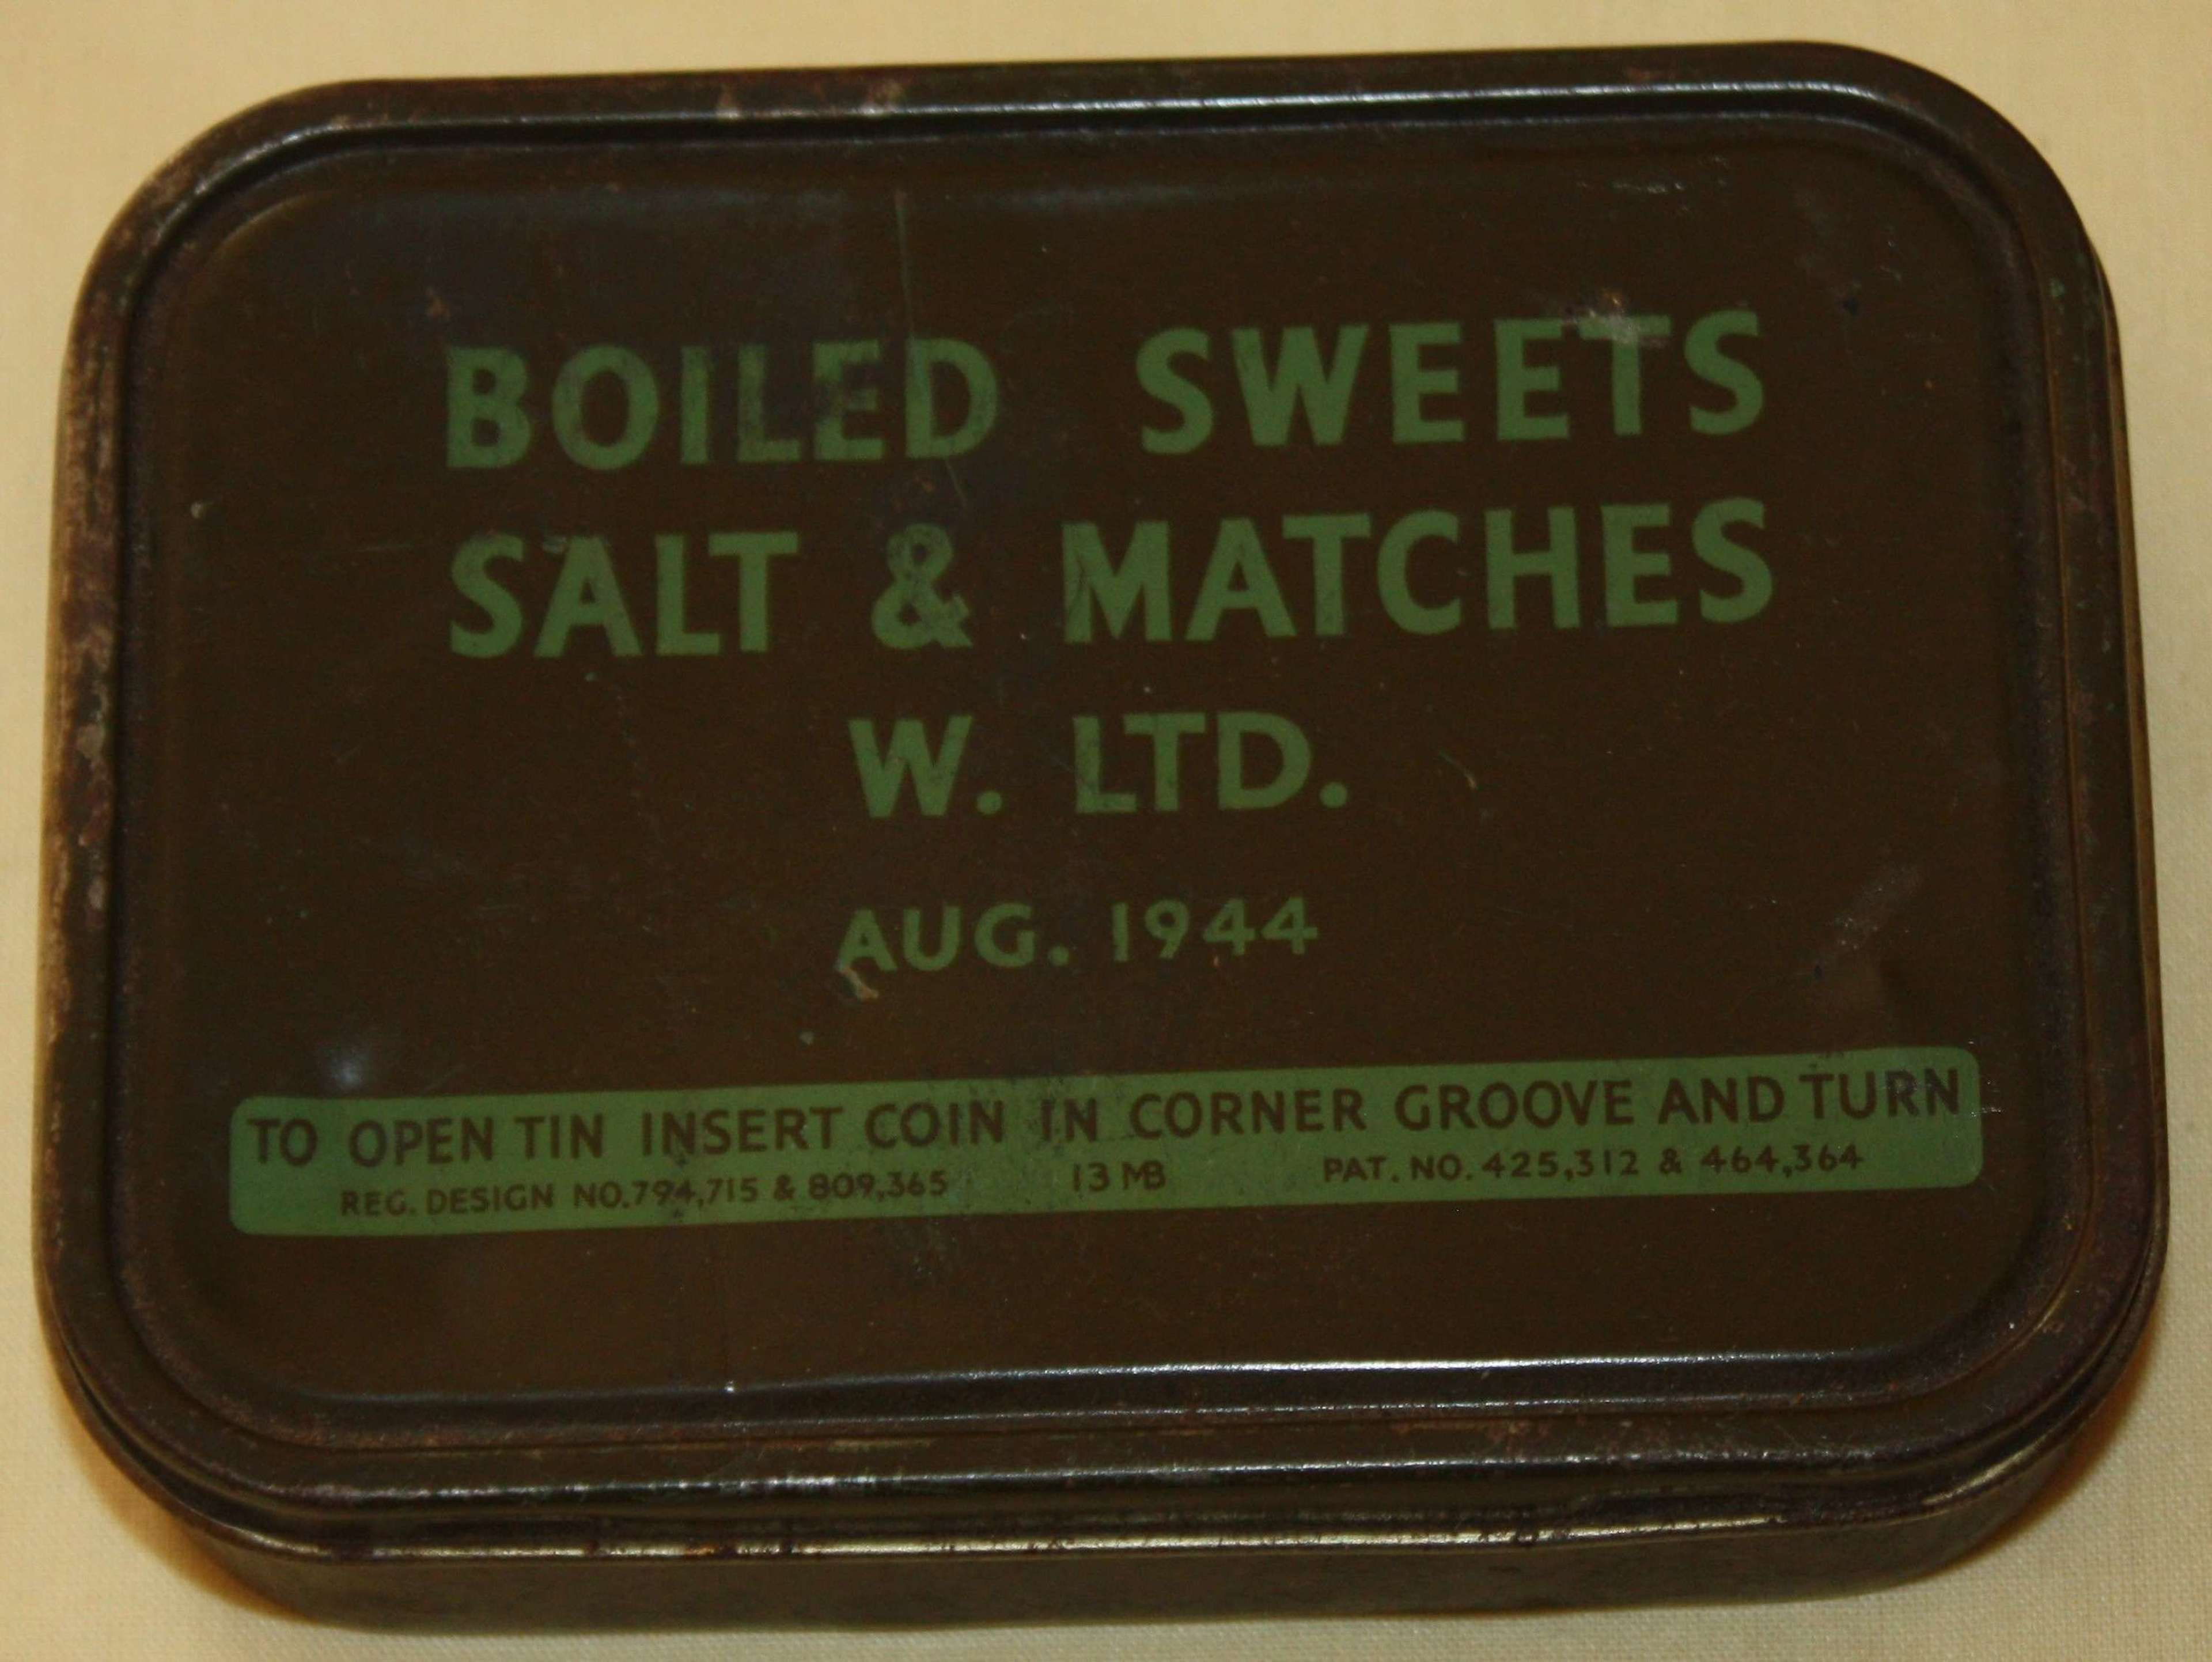 A RARE EXAMPLE OF THE BOILD SWEETS AND MATCHES RATION TIN